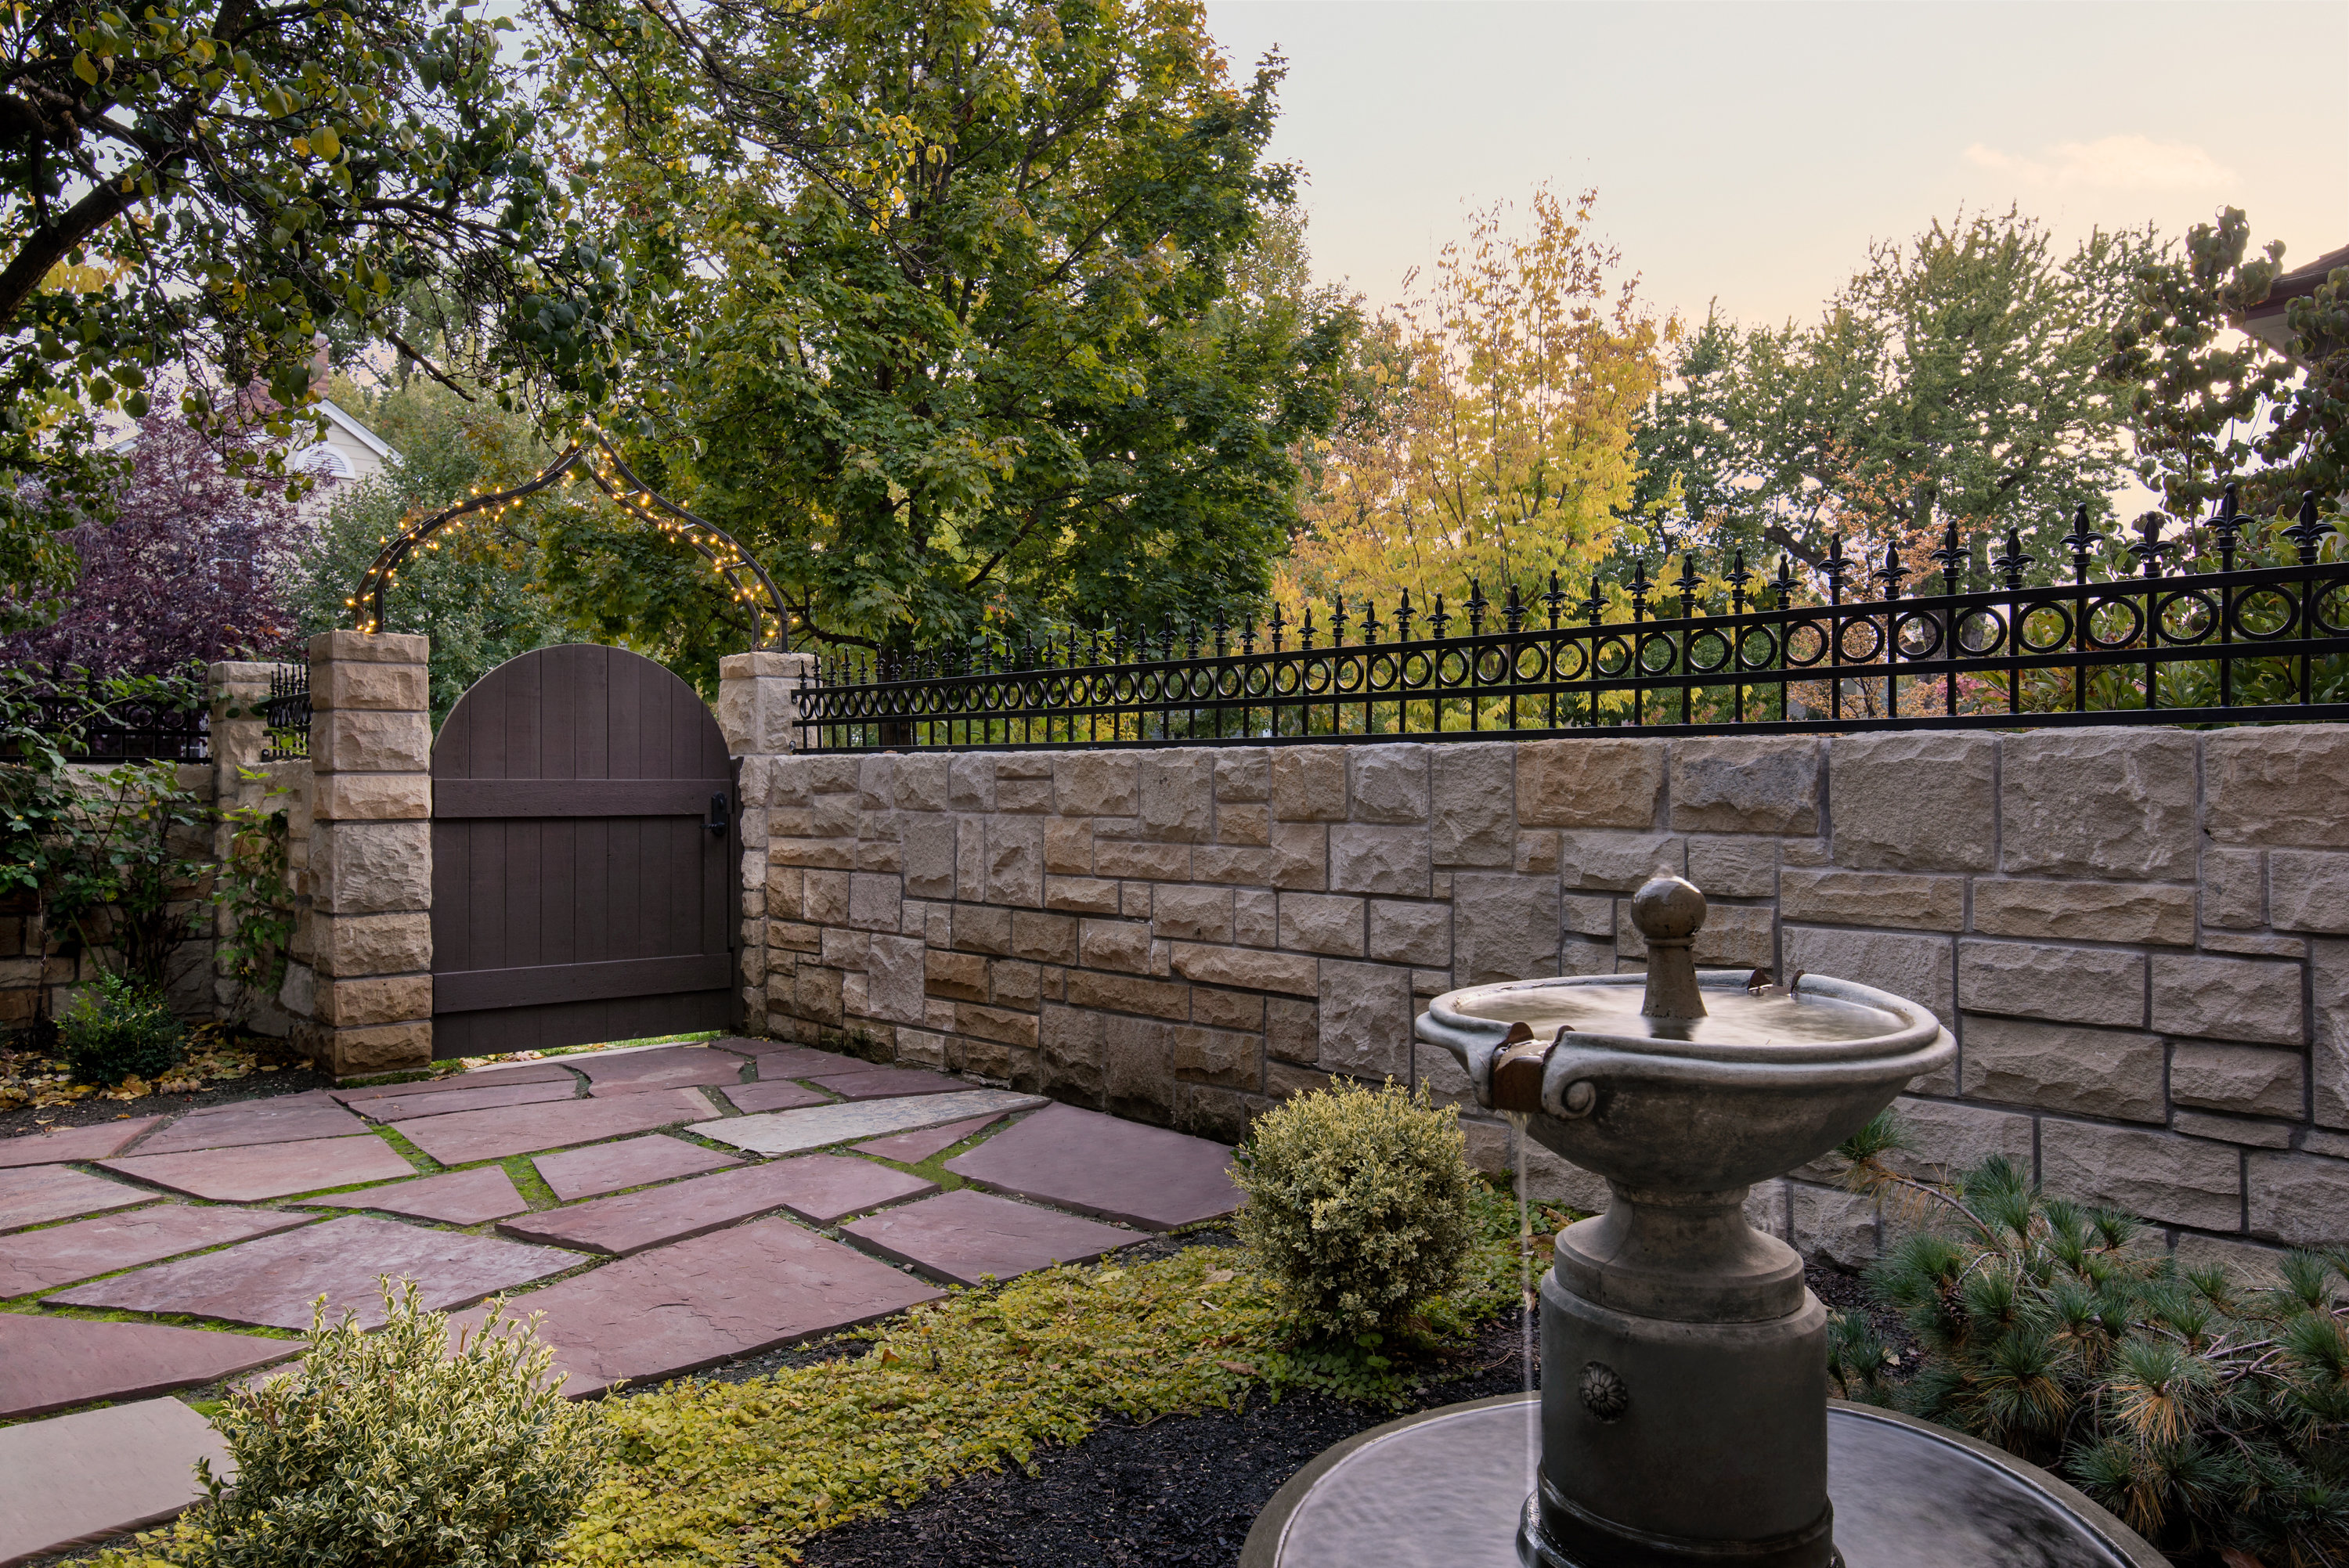 Romantic Garden with Gate & Fountain | The Garden Artist Boise, ID